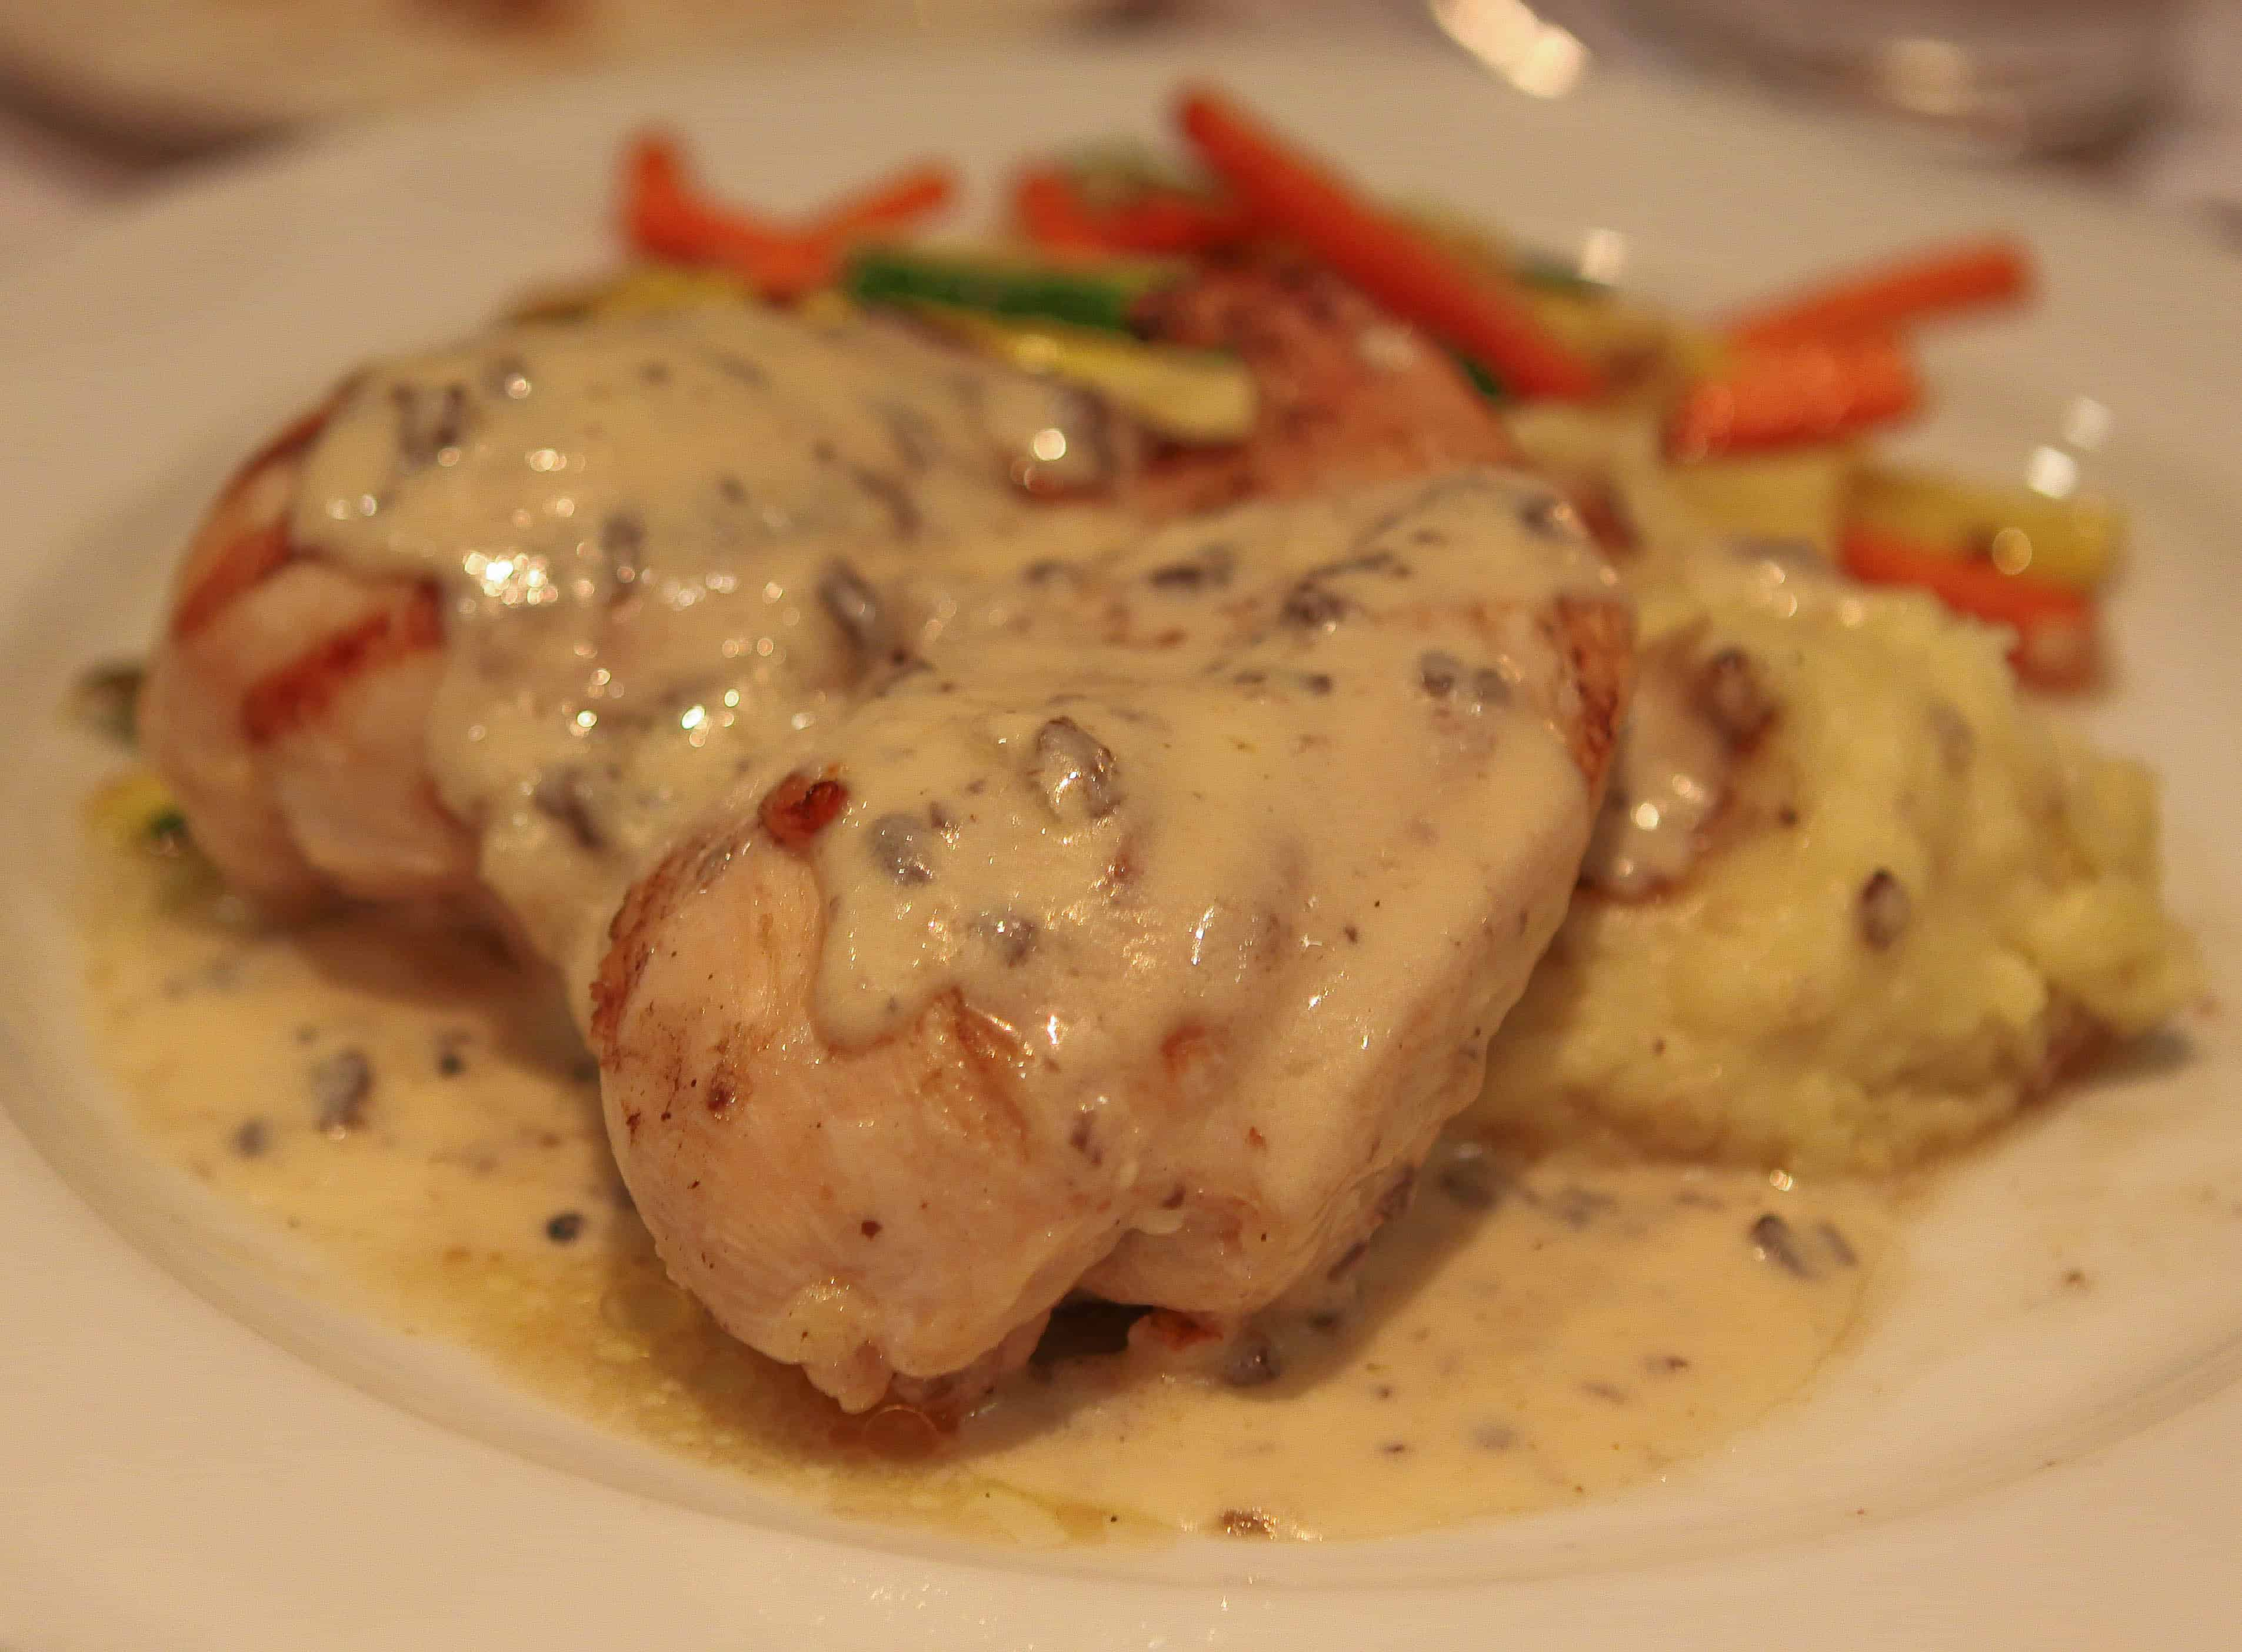 A Plate of Stuffed Chicken Breast with Blue Cheese and Mushrooms